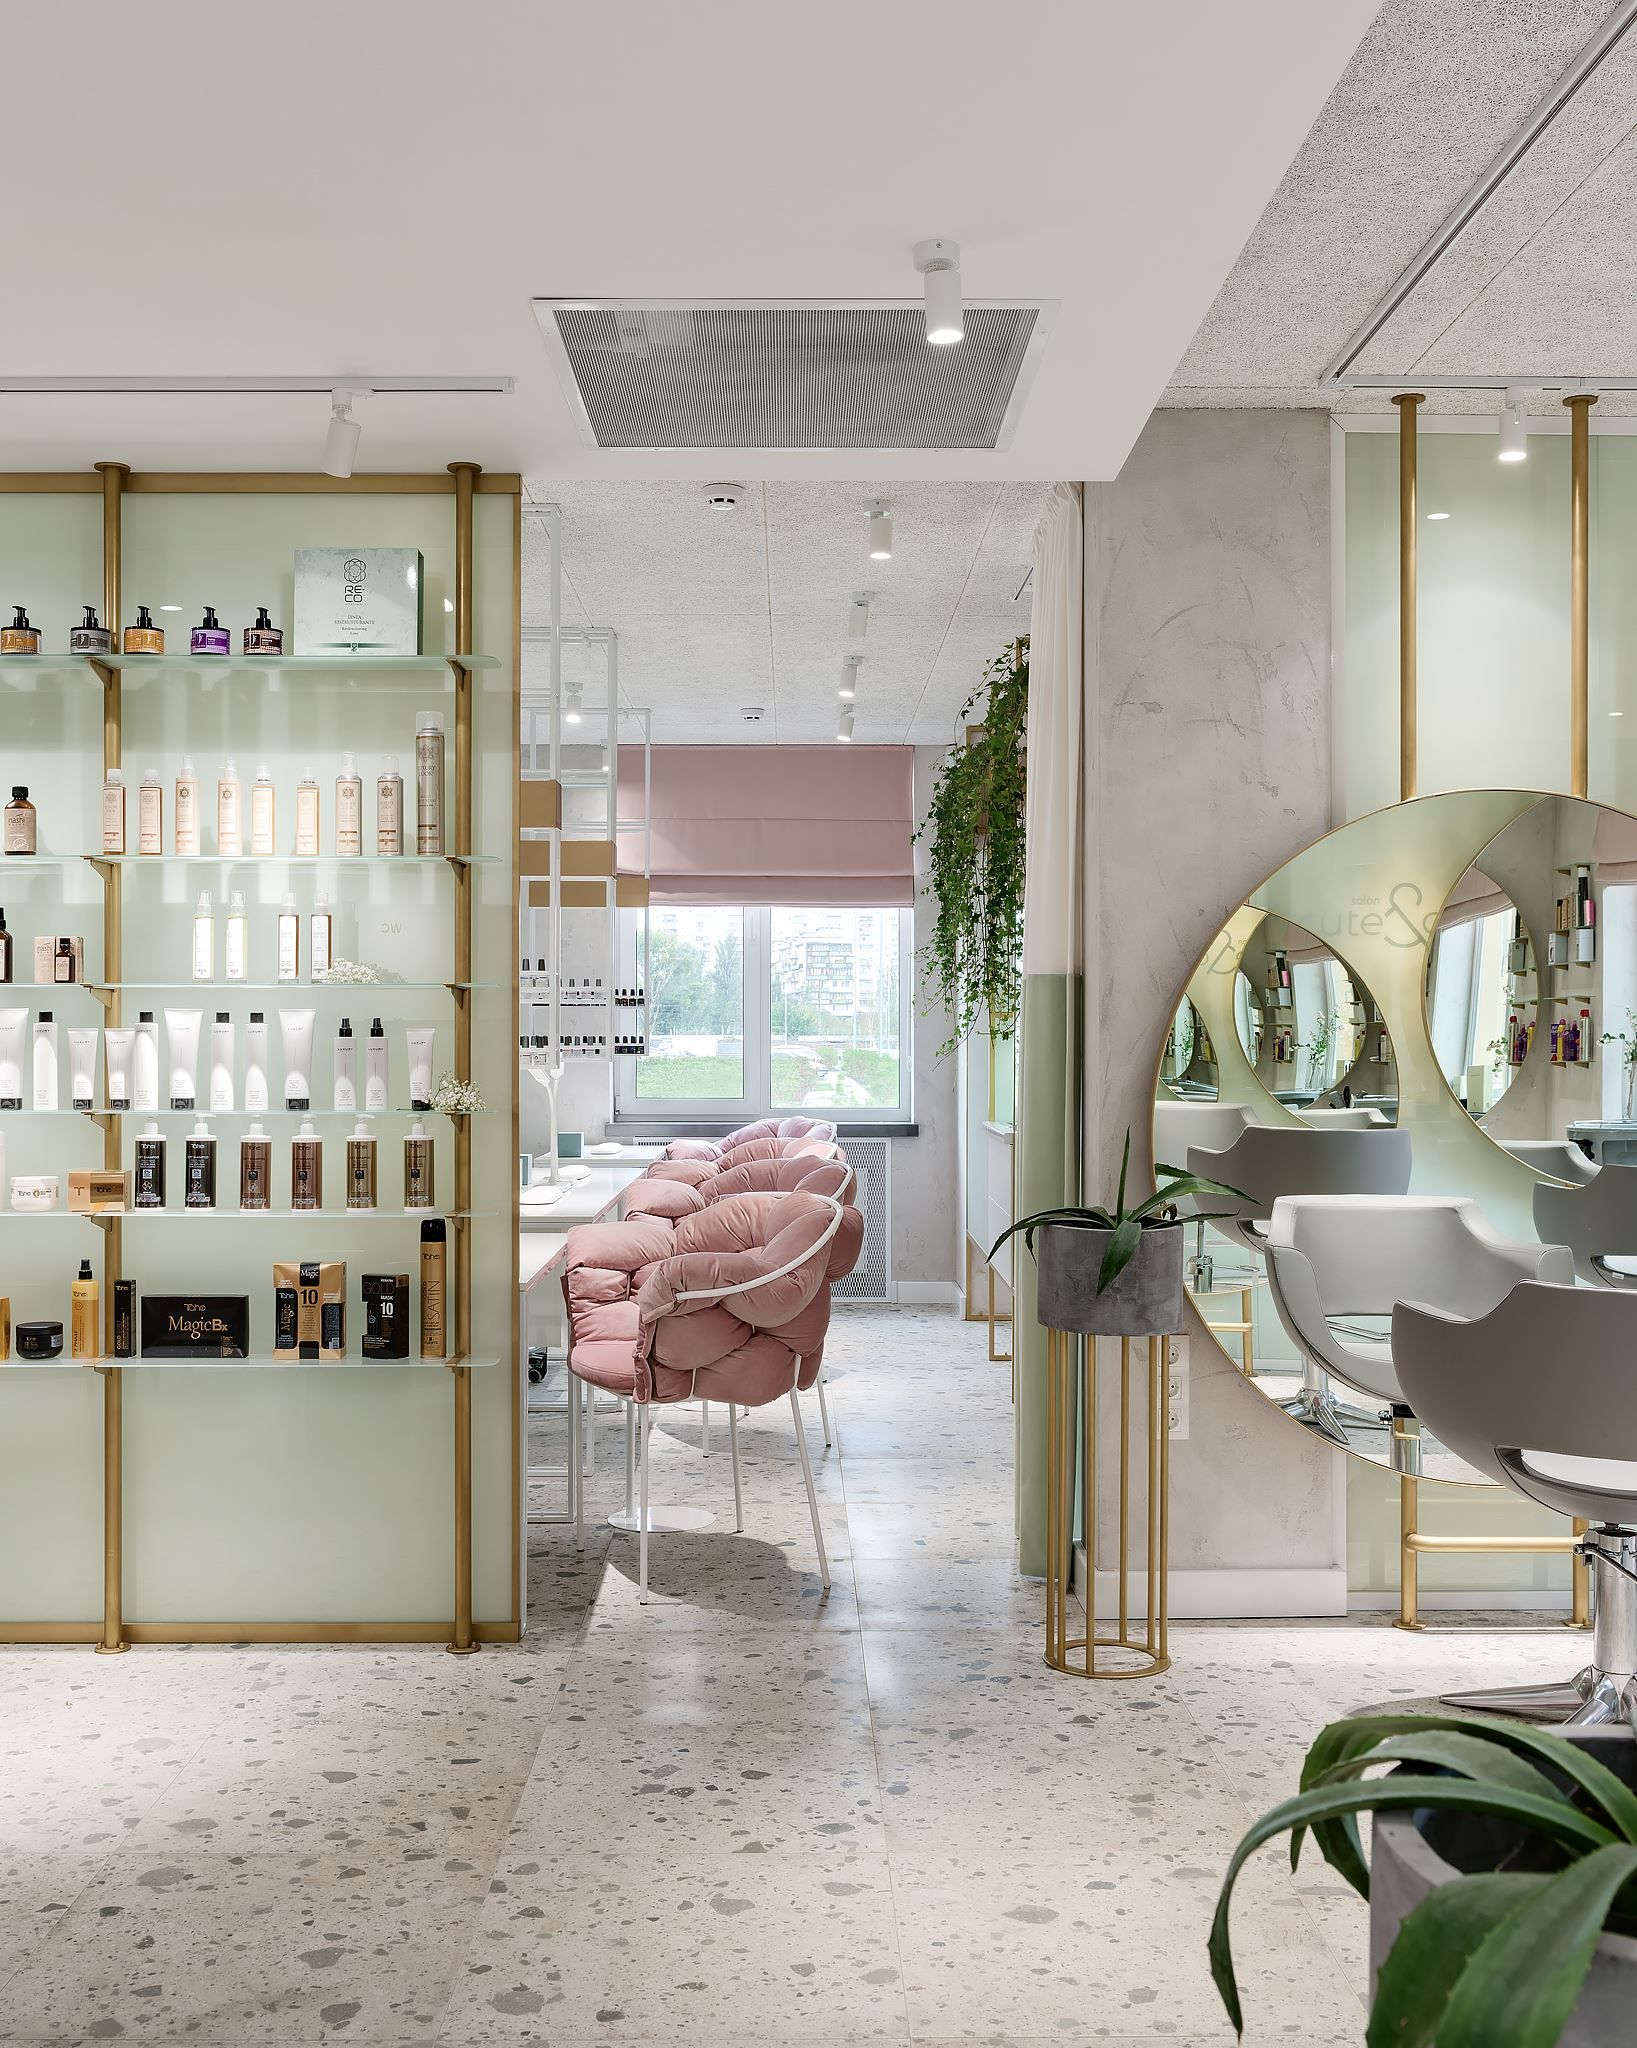 579 Best Store Design images in 2019 | Store design, Store ...